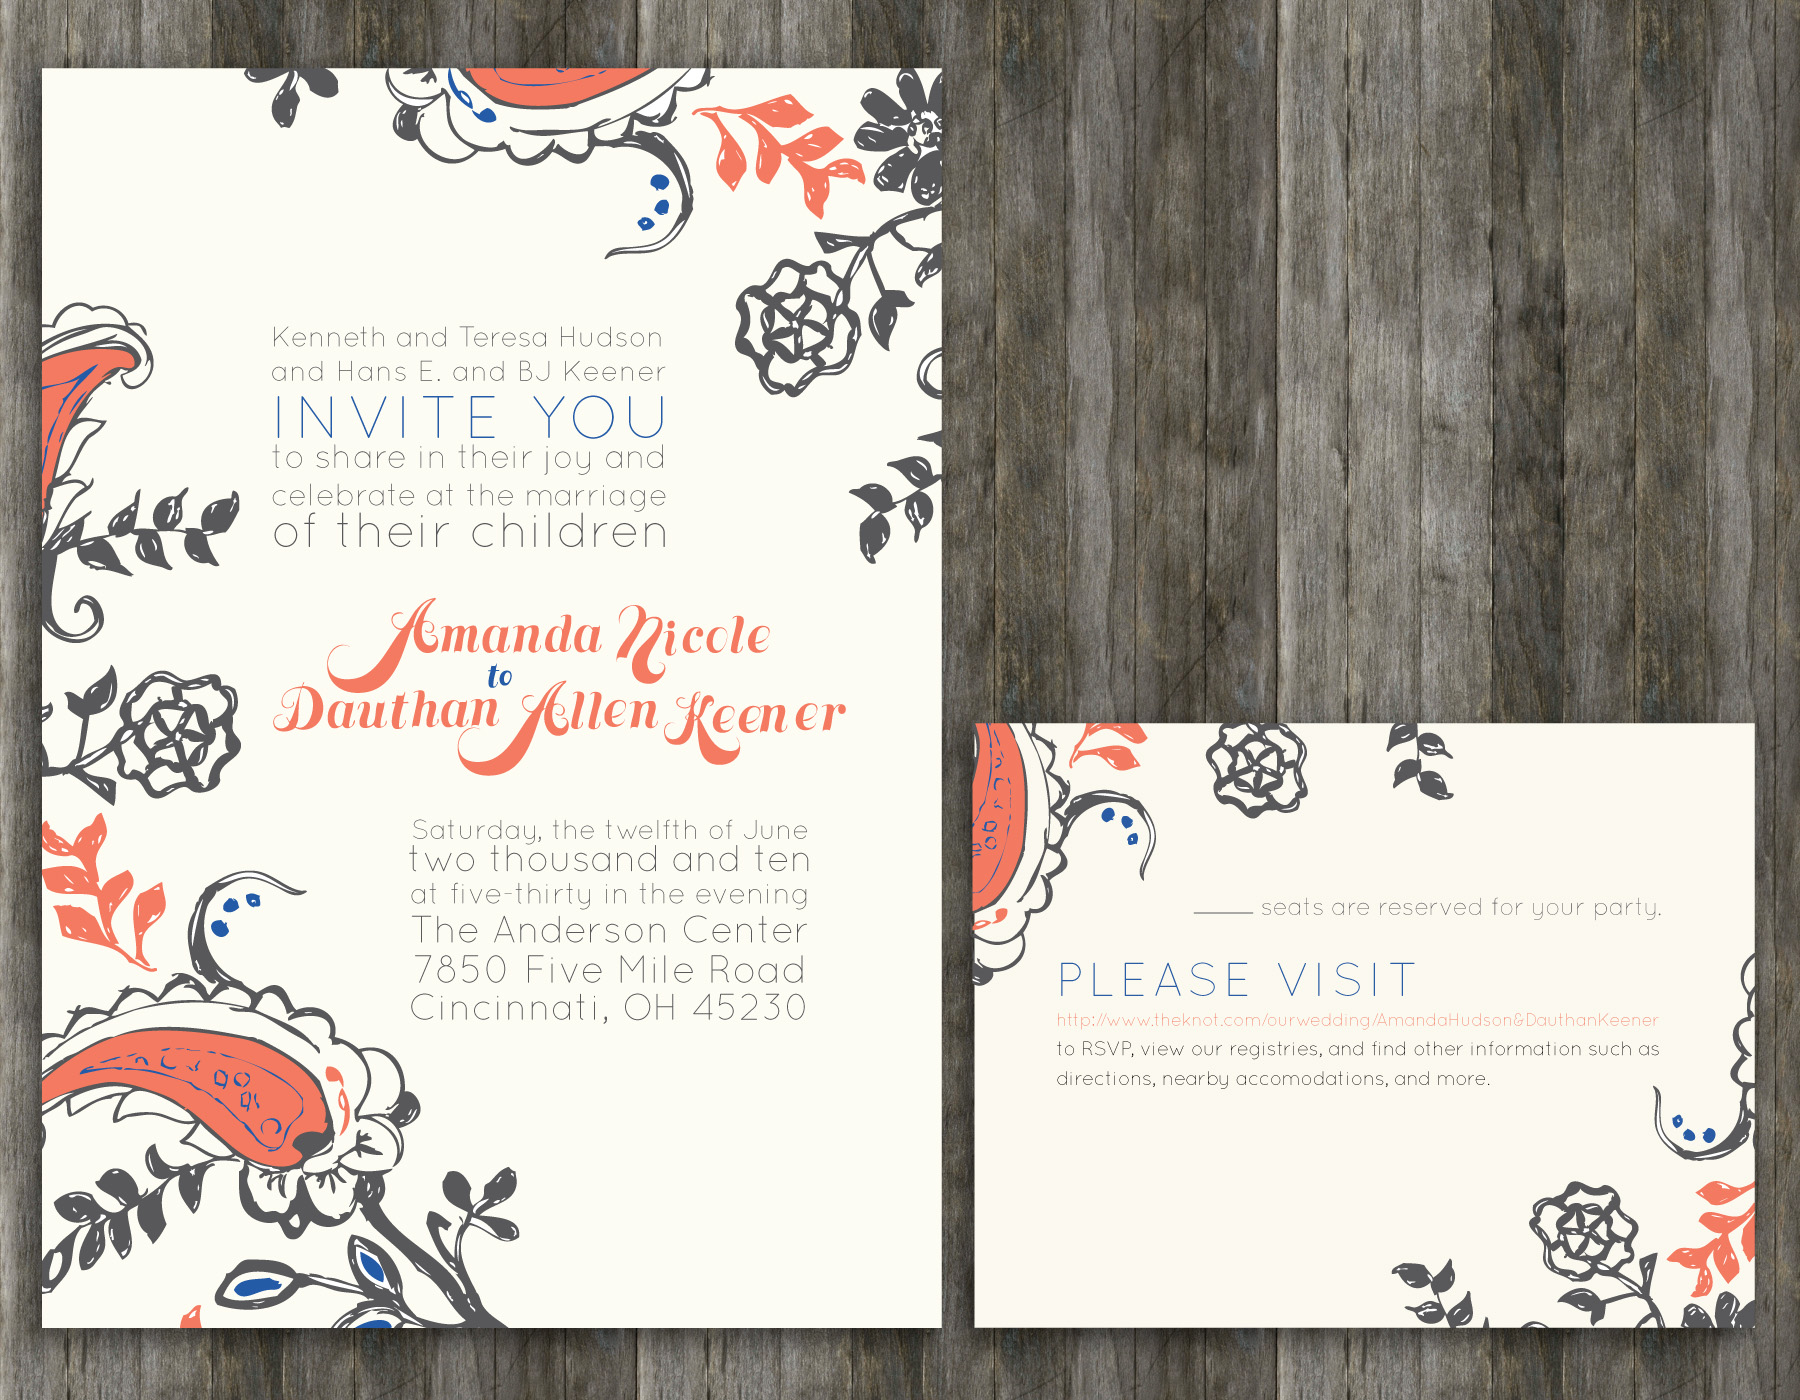 Wedding Invitations: Amanda and Dauthan - Be Up & Doing